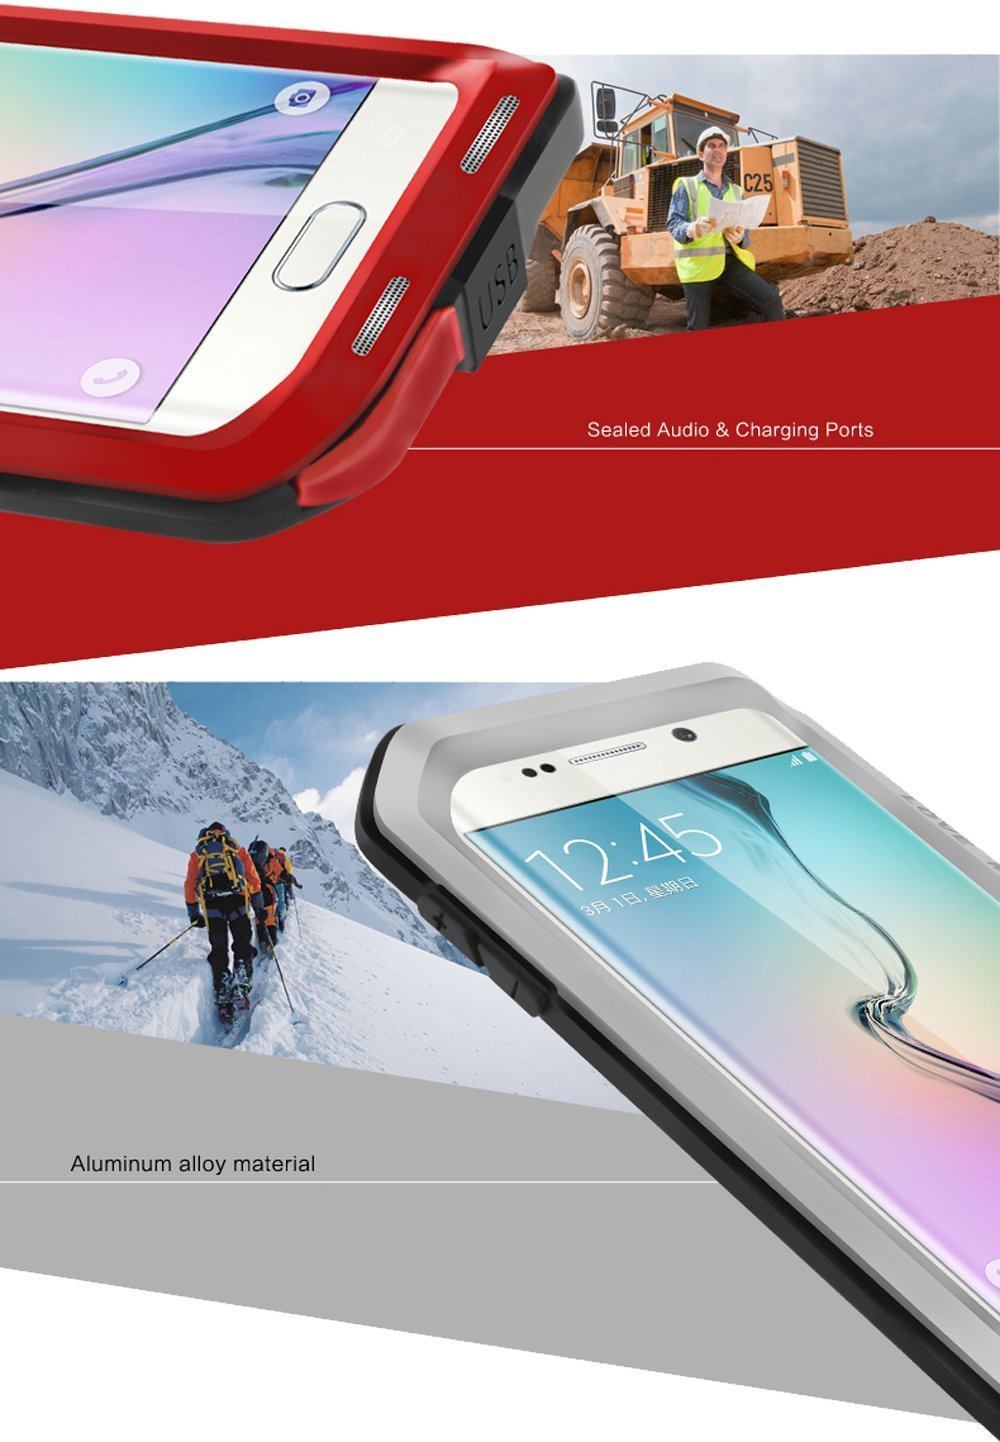 Galaxy S6 Edge Case Hm Ant Love Mei Aluminum Silicone Lifeproof Samsung Fre 77 51242 Black Impact Protection Waterproof Shockproof Rugged Waist Metal Cover For